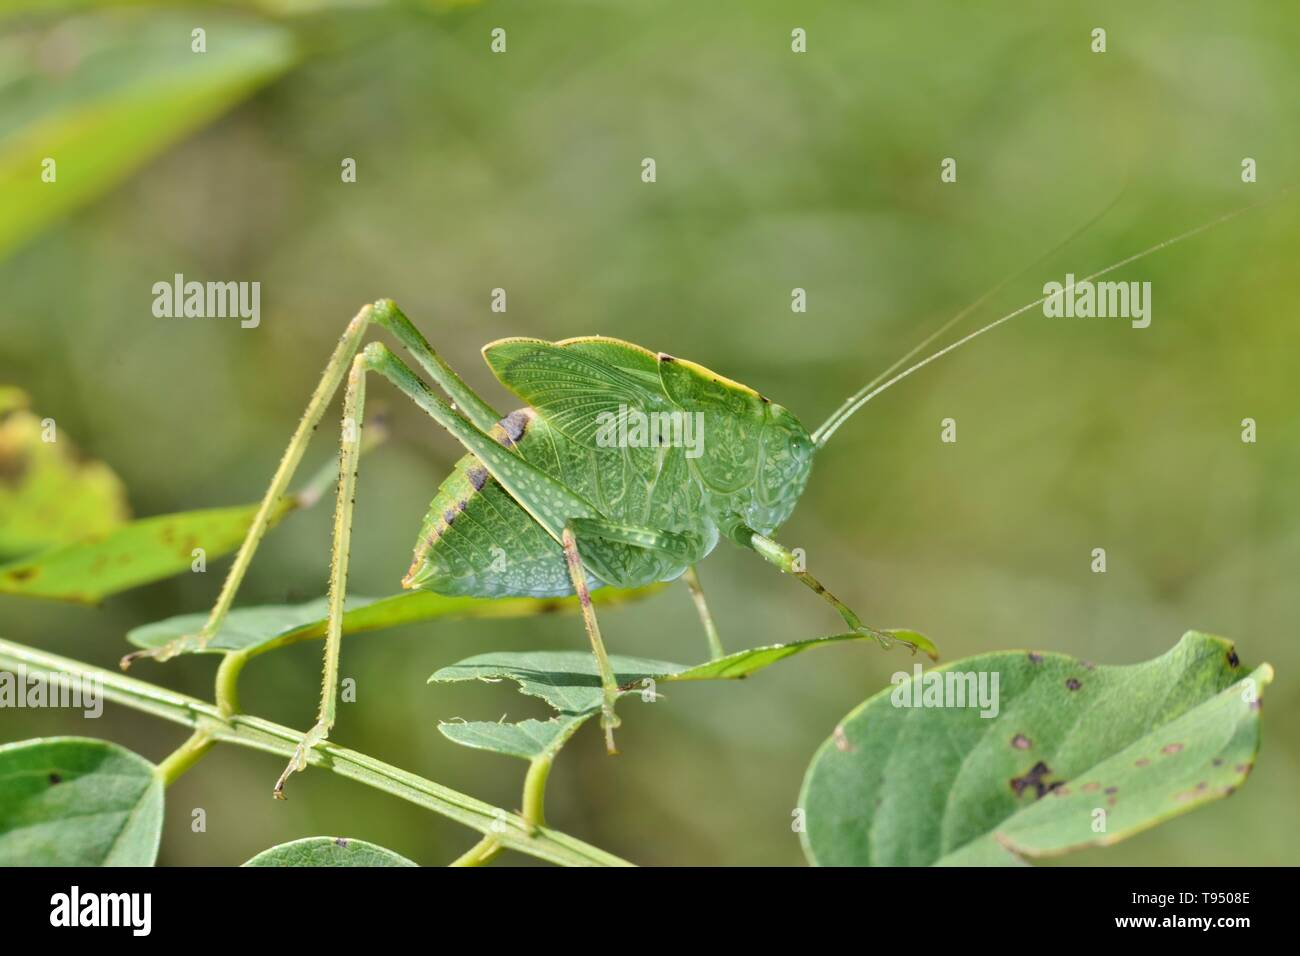 A Katydid looks like a leaf and is quite well camouflaged as it creeps slowly amid the tree foliage. - Stock Image